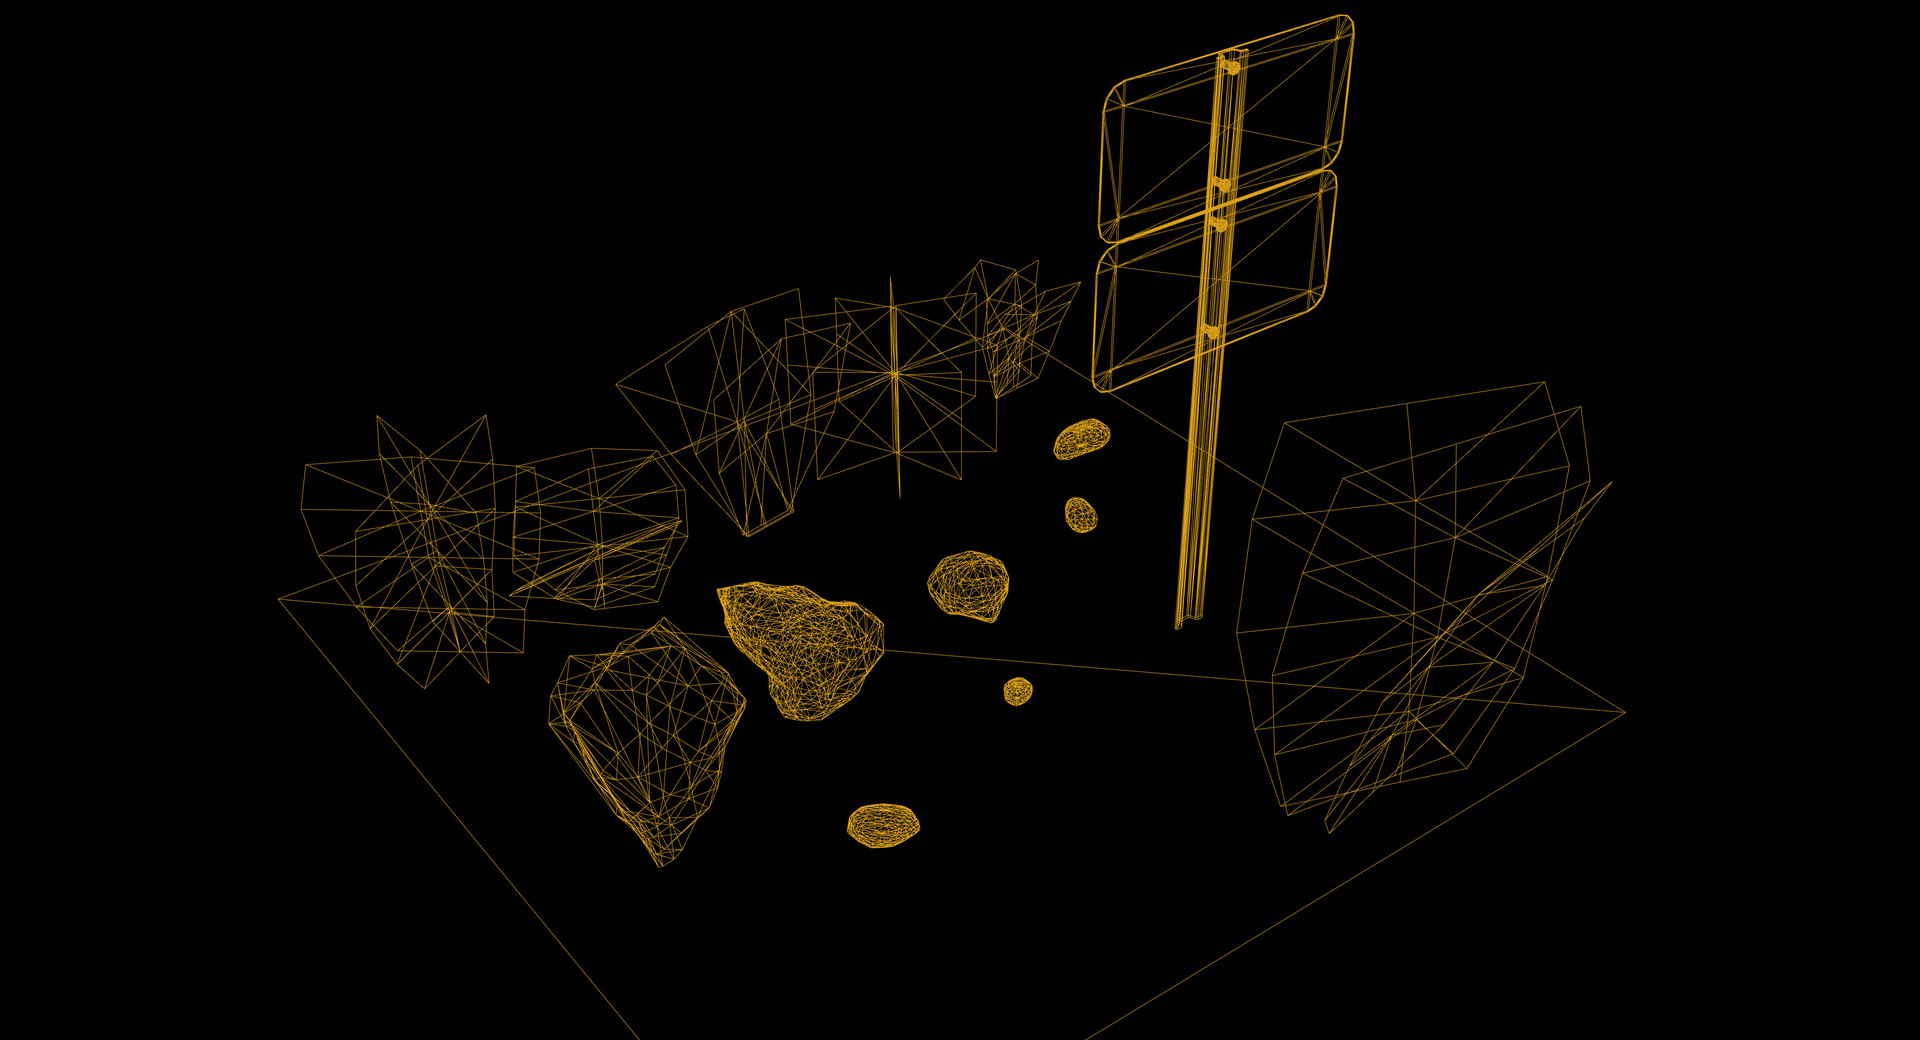 Chris qing qing zhao meshes wireframe